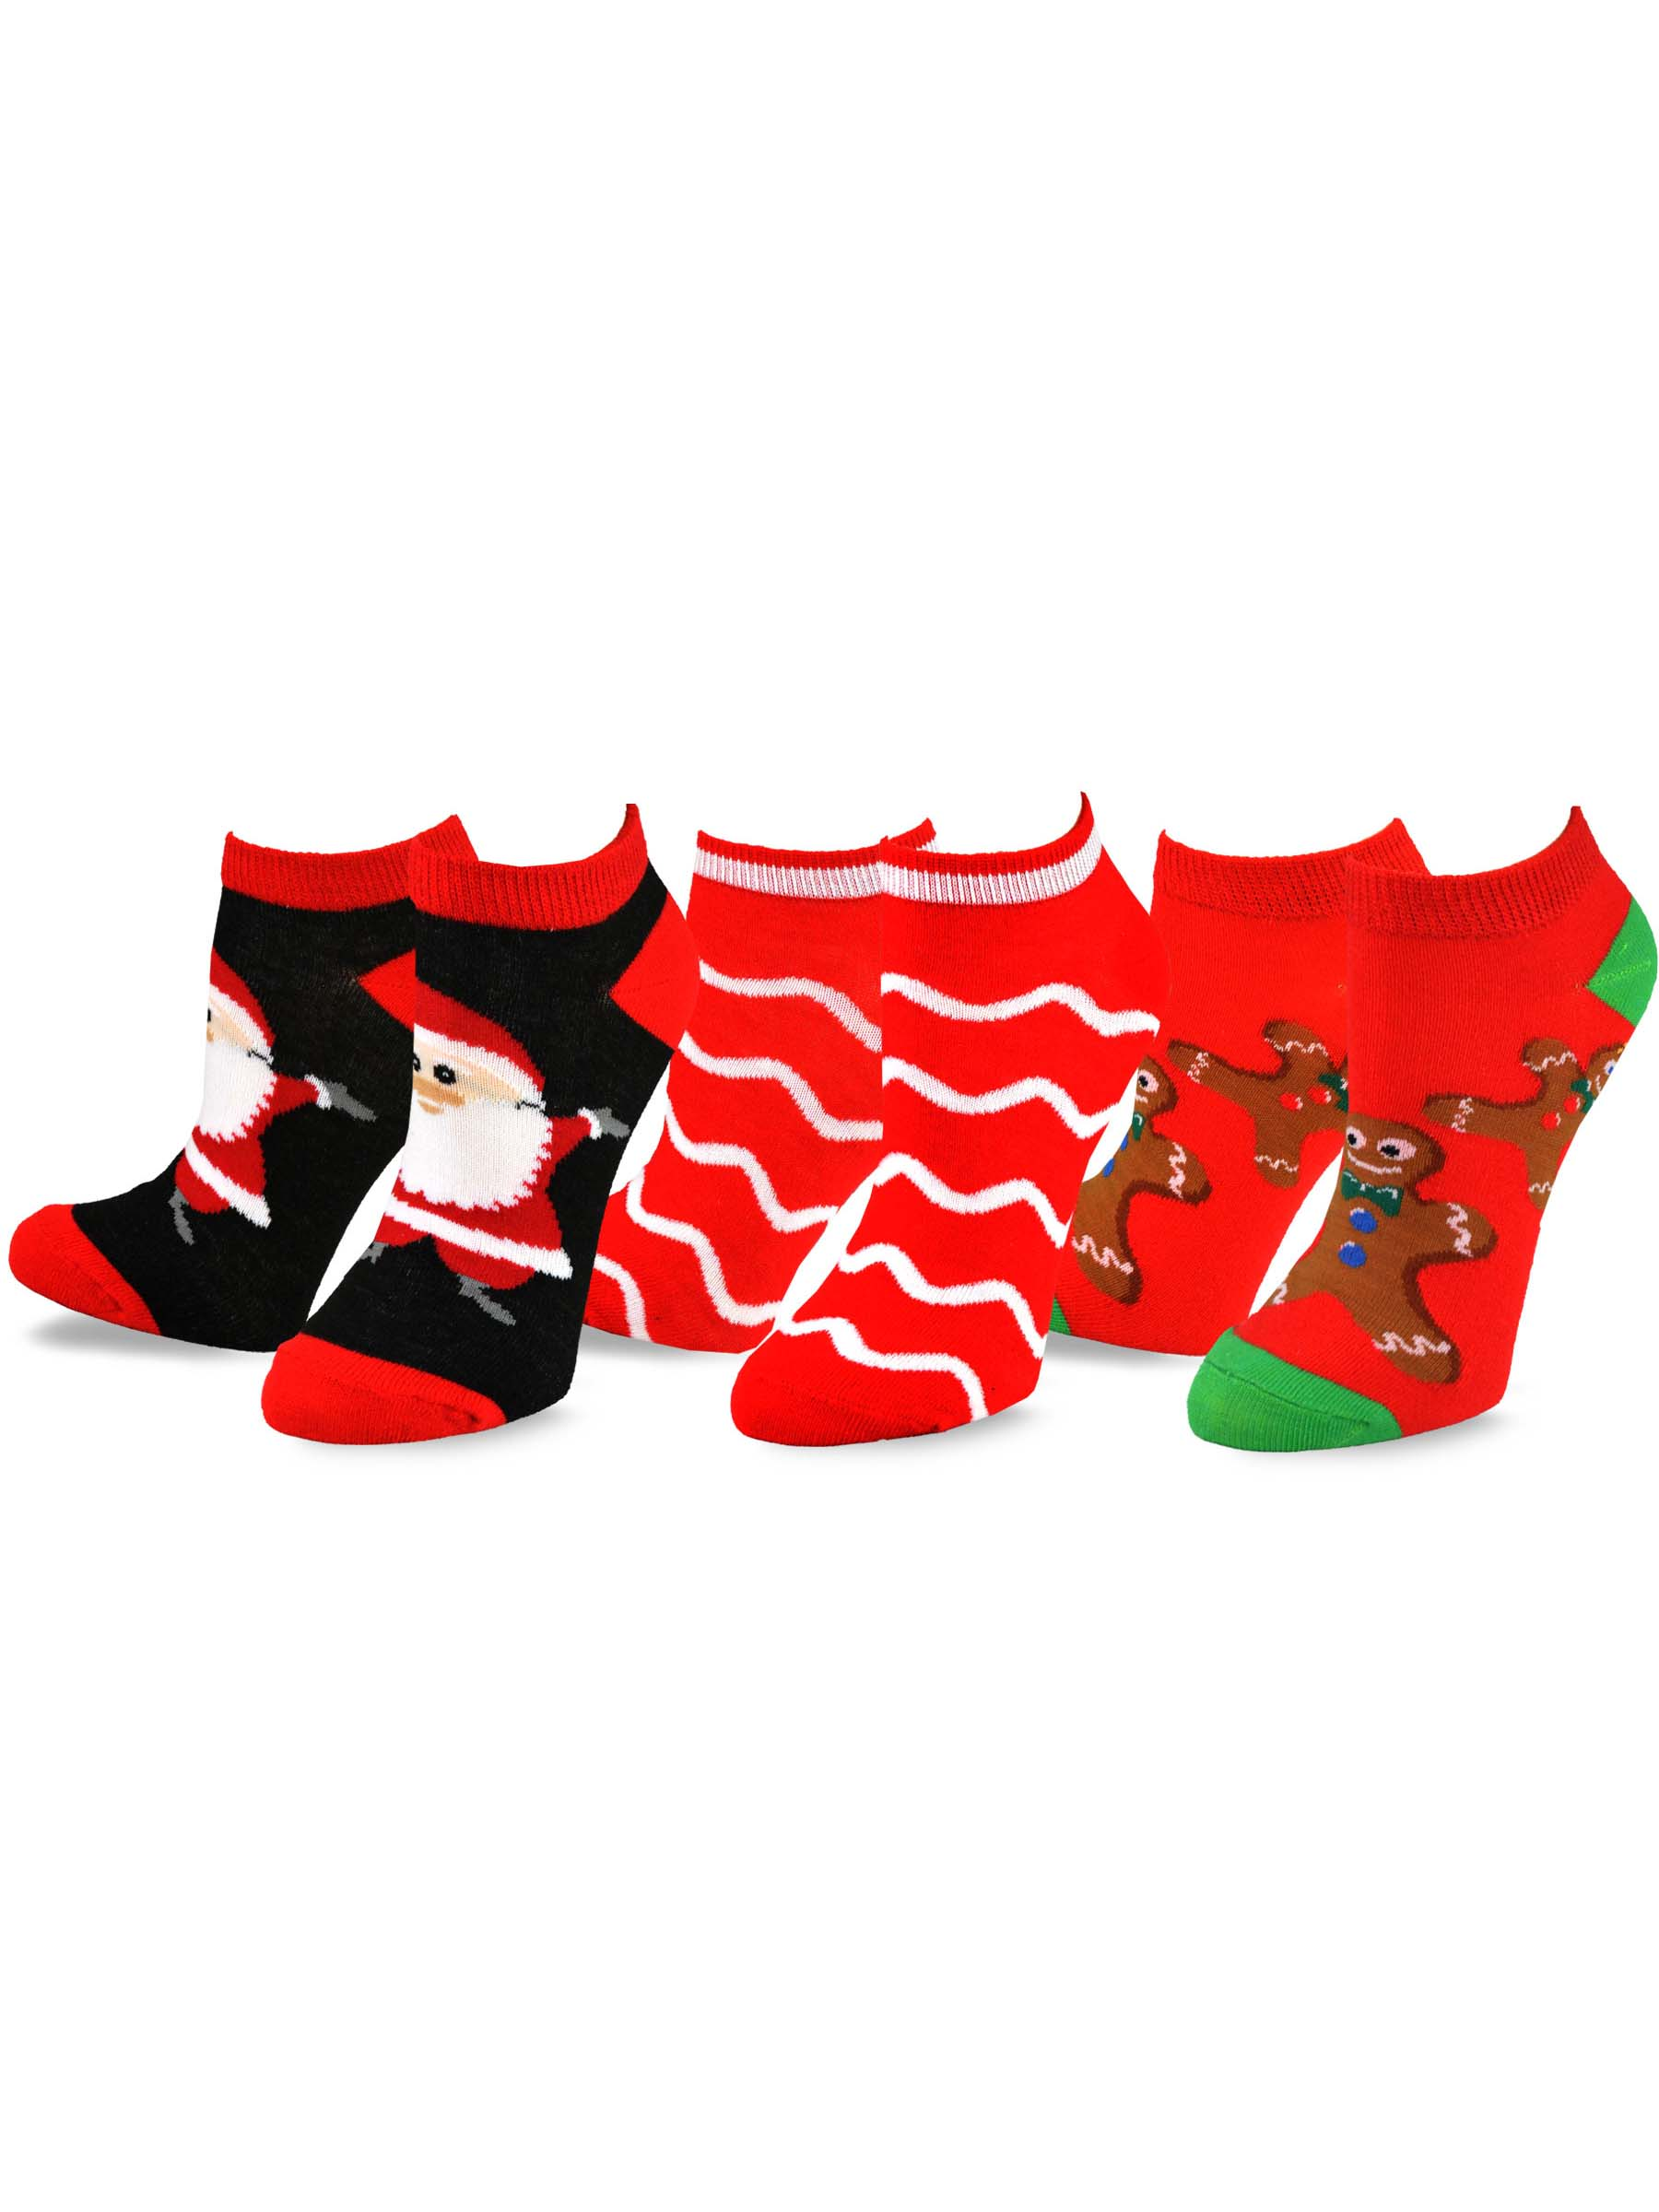 TeeHee Christmas and Holiday Fun No Show Socks for Women 3-Pack